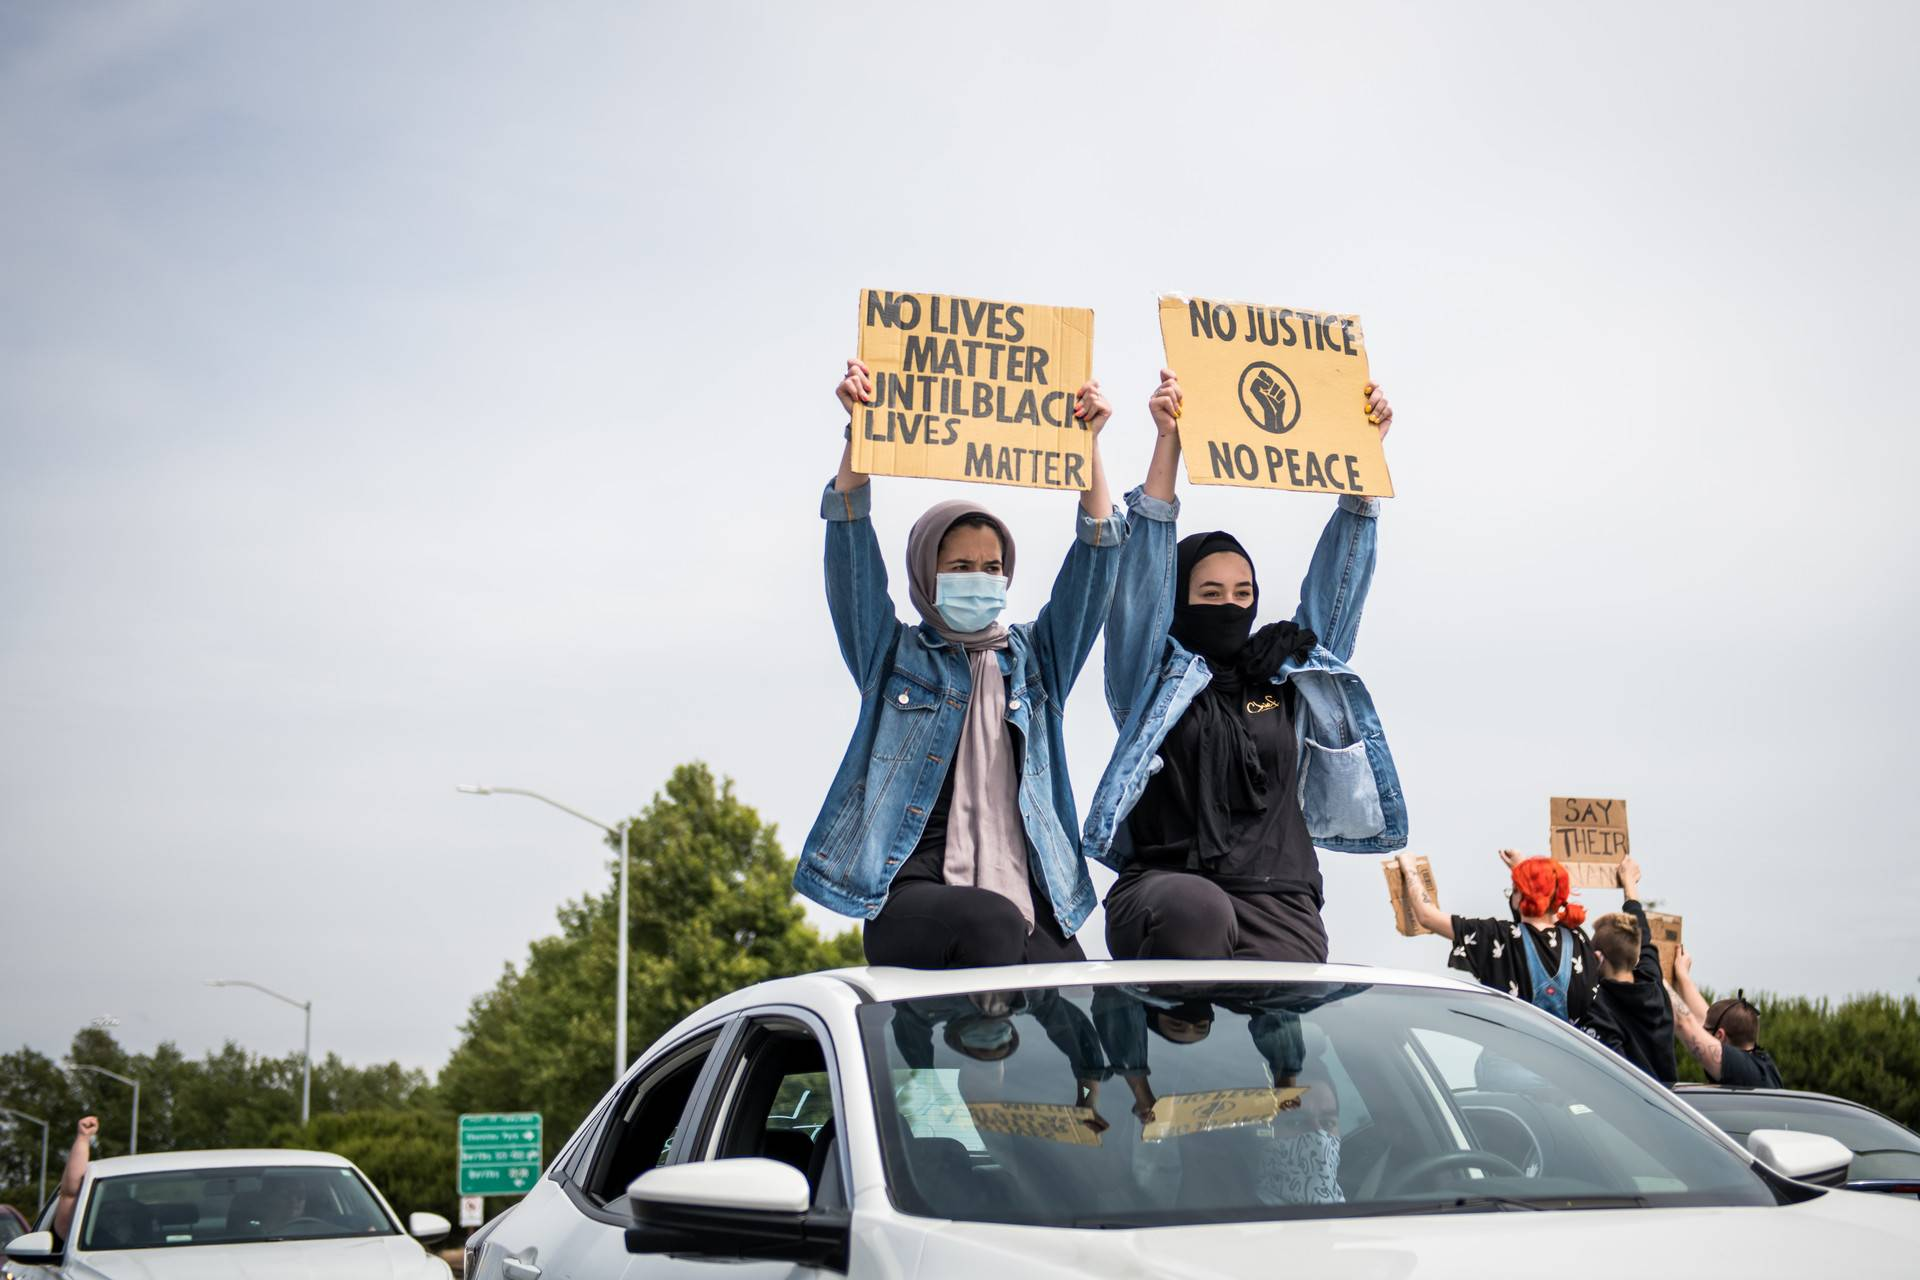 Thousands of vehicles lined up at the Port of Oakland before departing to Lake Merritt on Sunday May 31, 2020 to take part in a caravan protesting the killing of George Floyd and other Black people at the hands of the police. Beth LaBerge/KQED